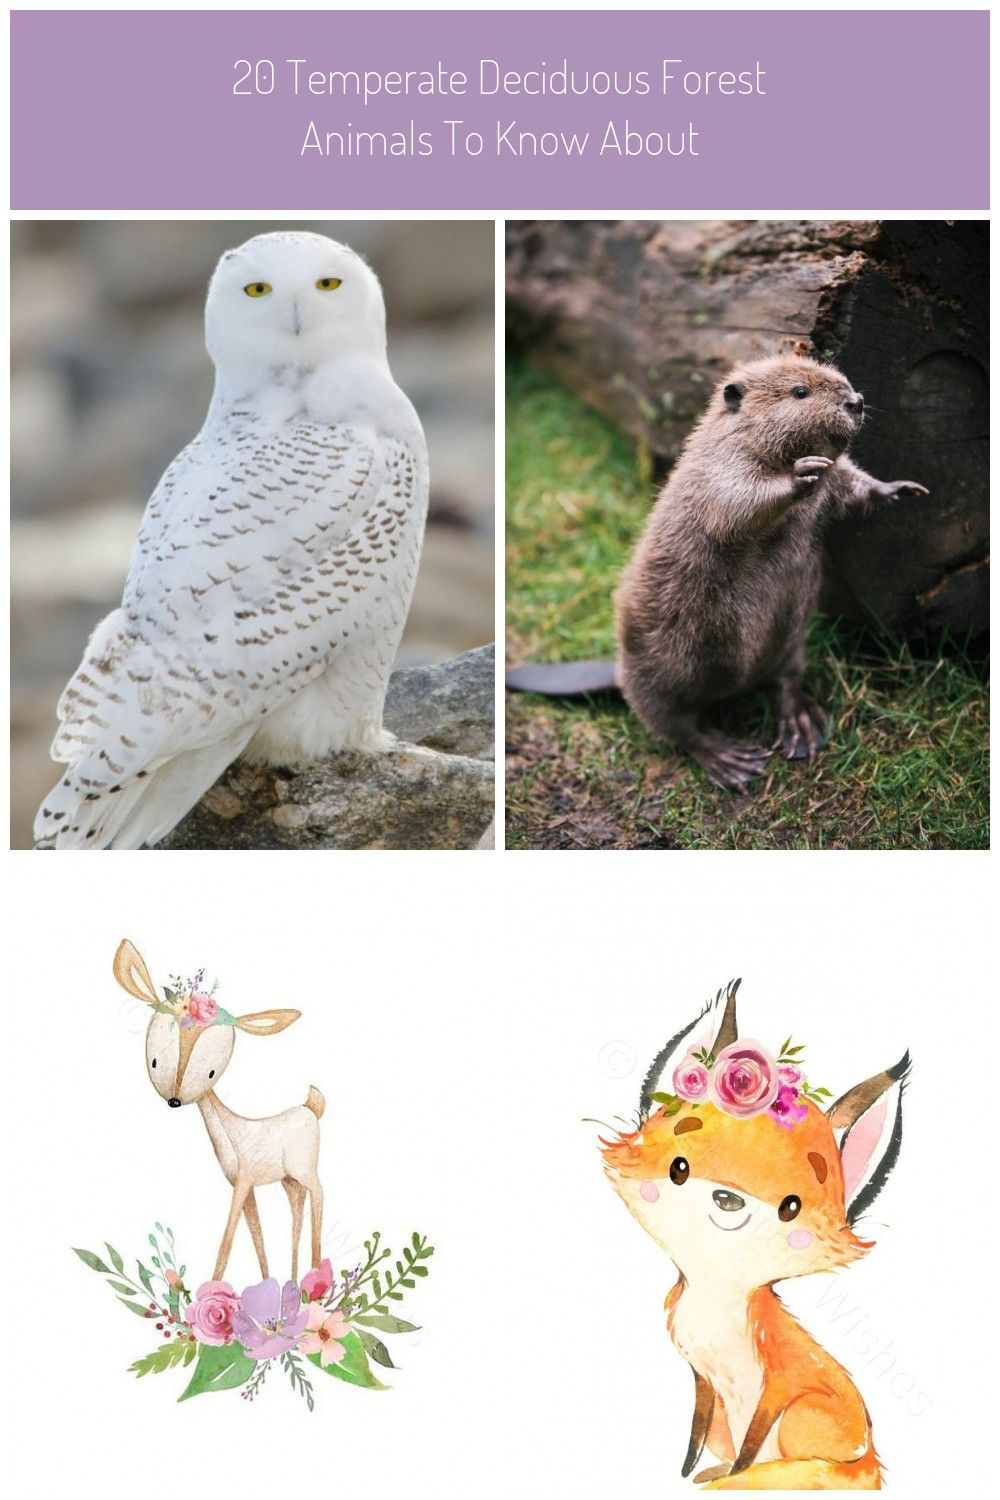 20 Temperate Deciduous Forest Animals To Know About (With